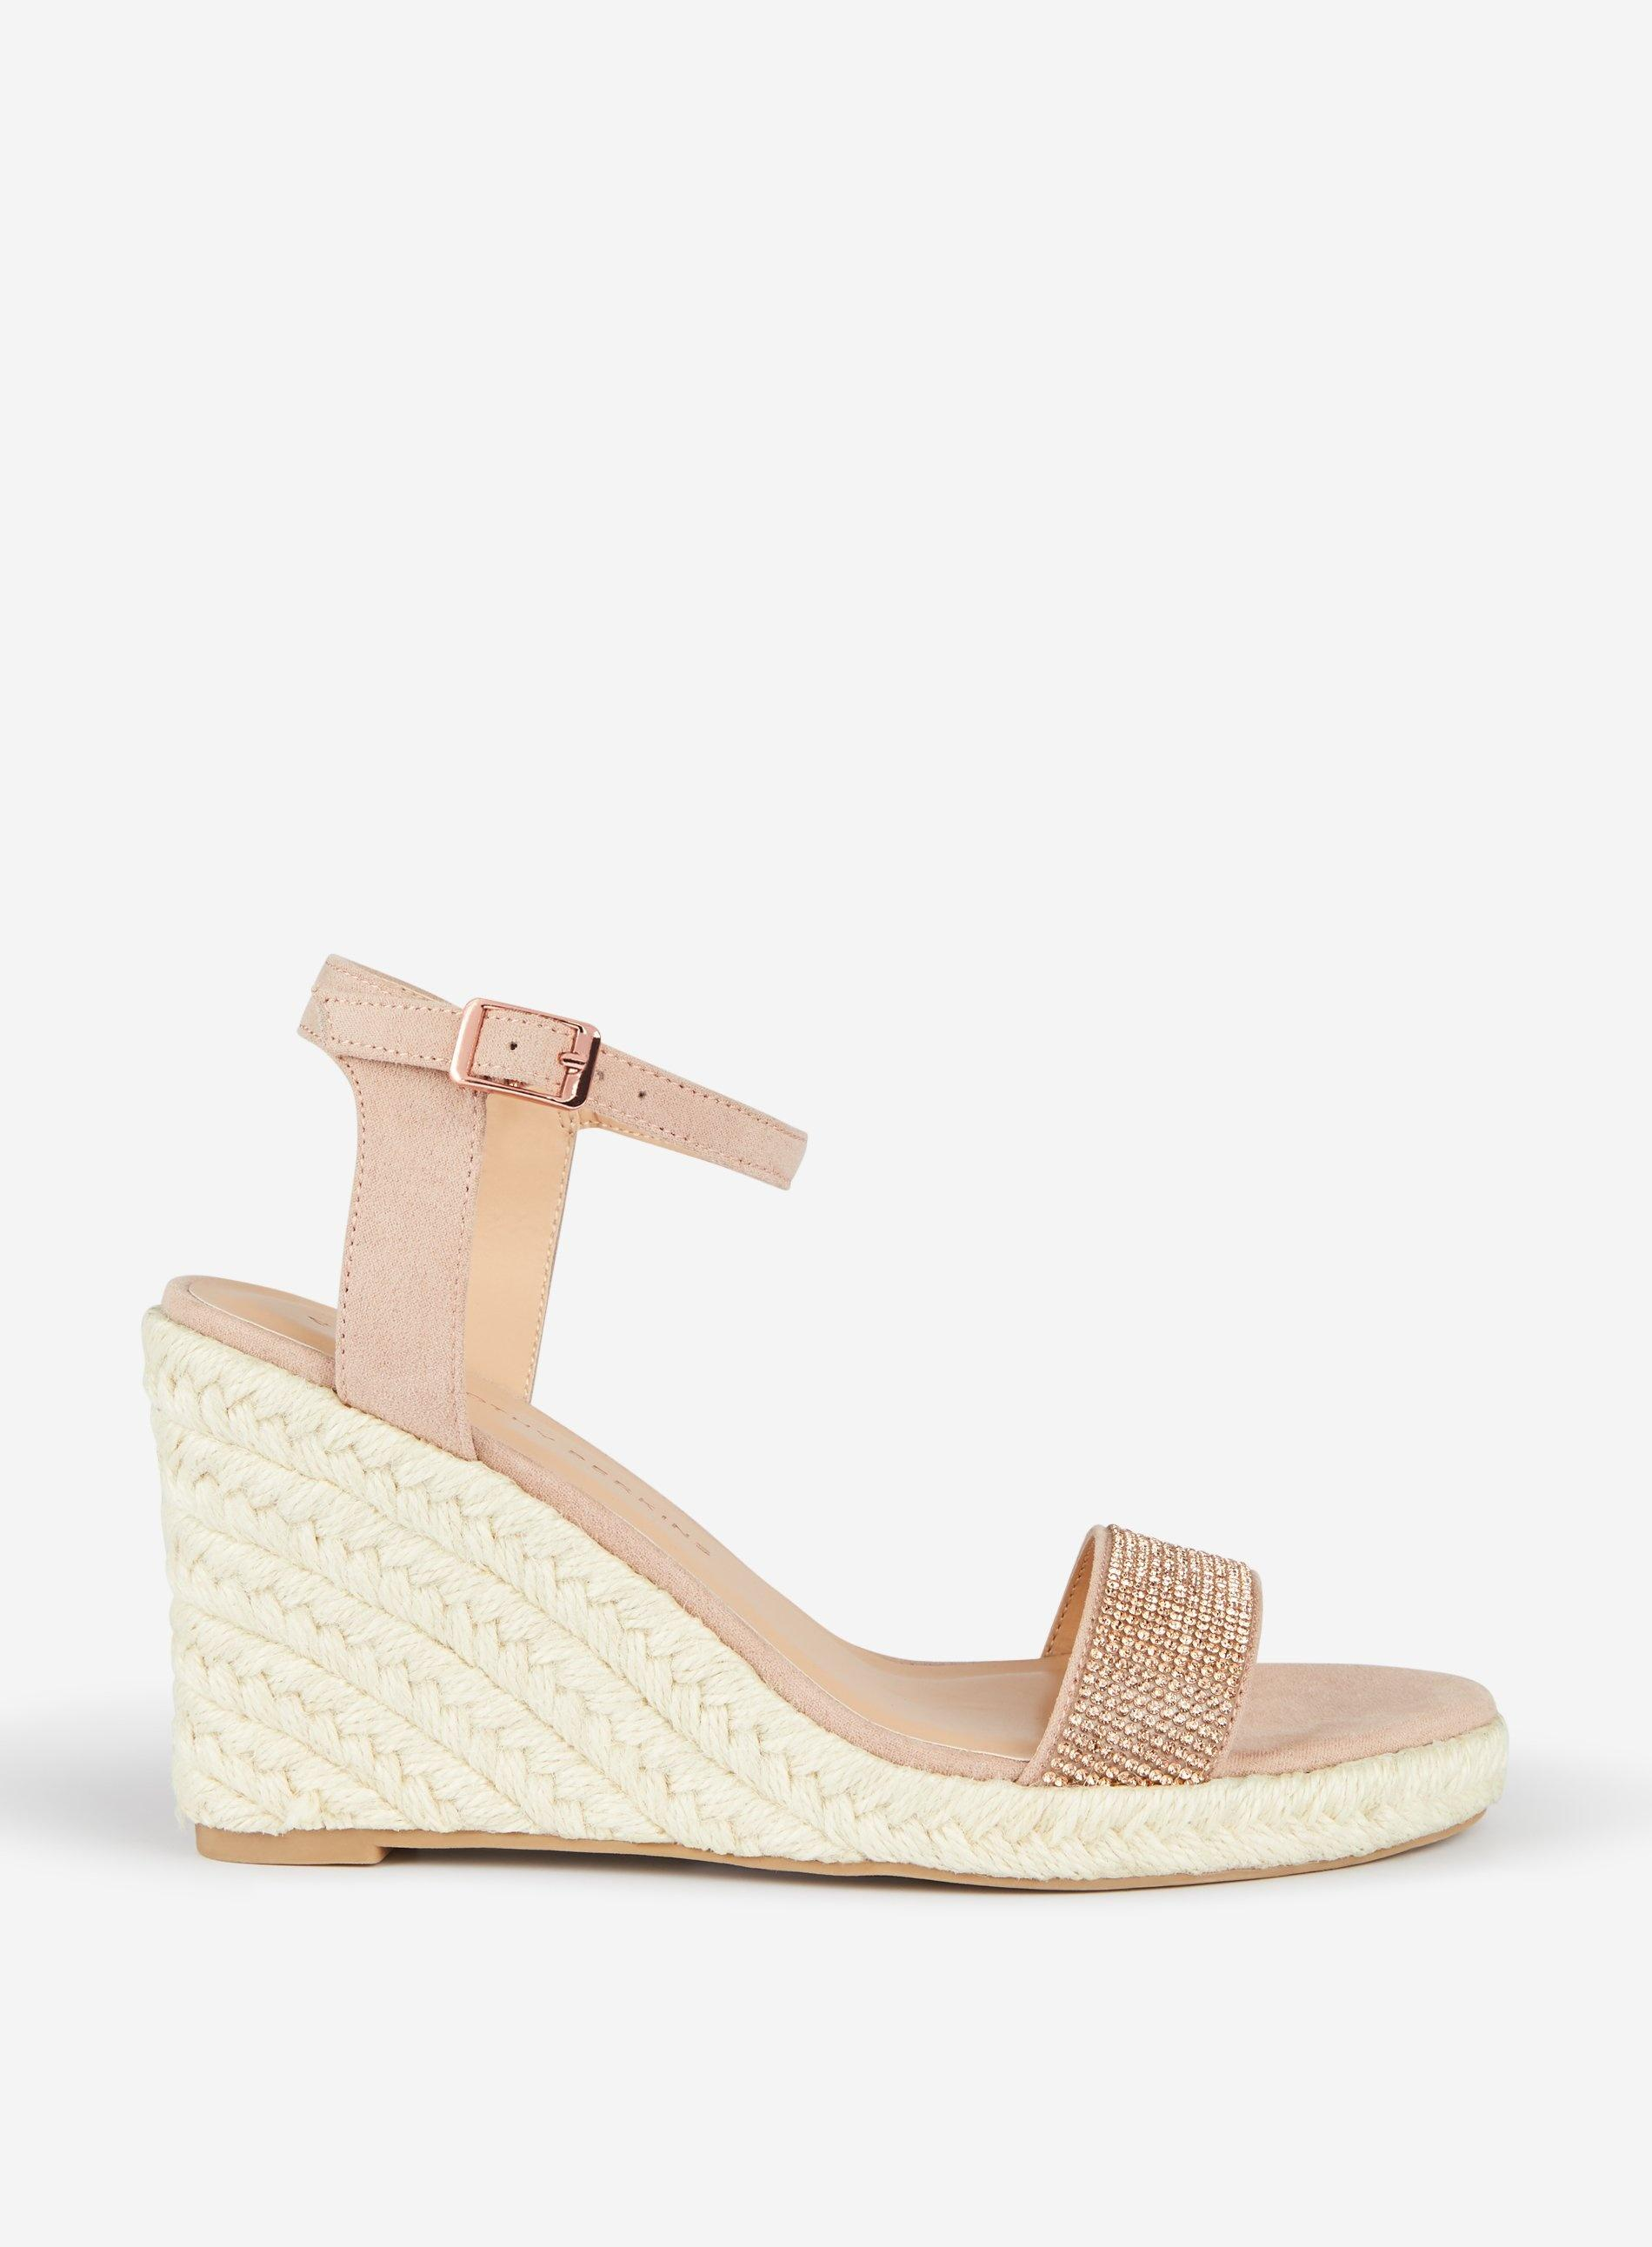 91a9491206b Dorothy Perkins Blush Ria Espadrille Wedge in Pink - Save 10% - Lyst